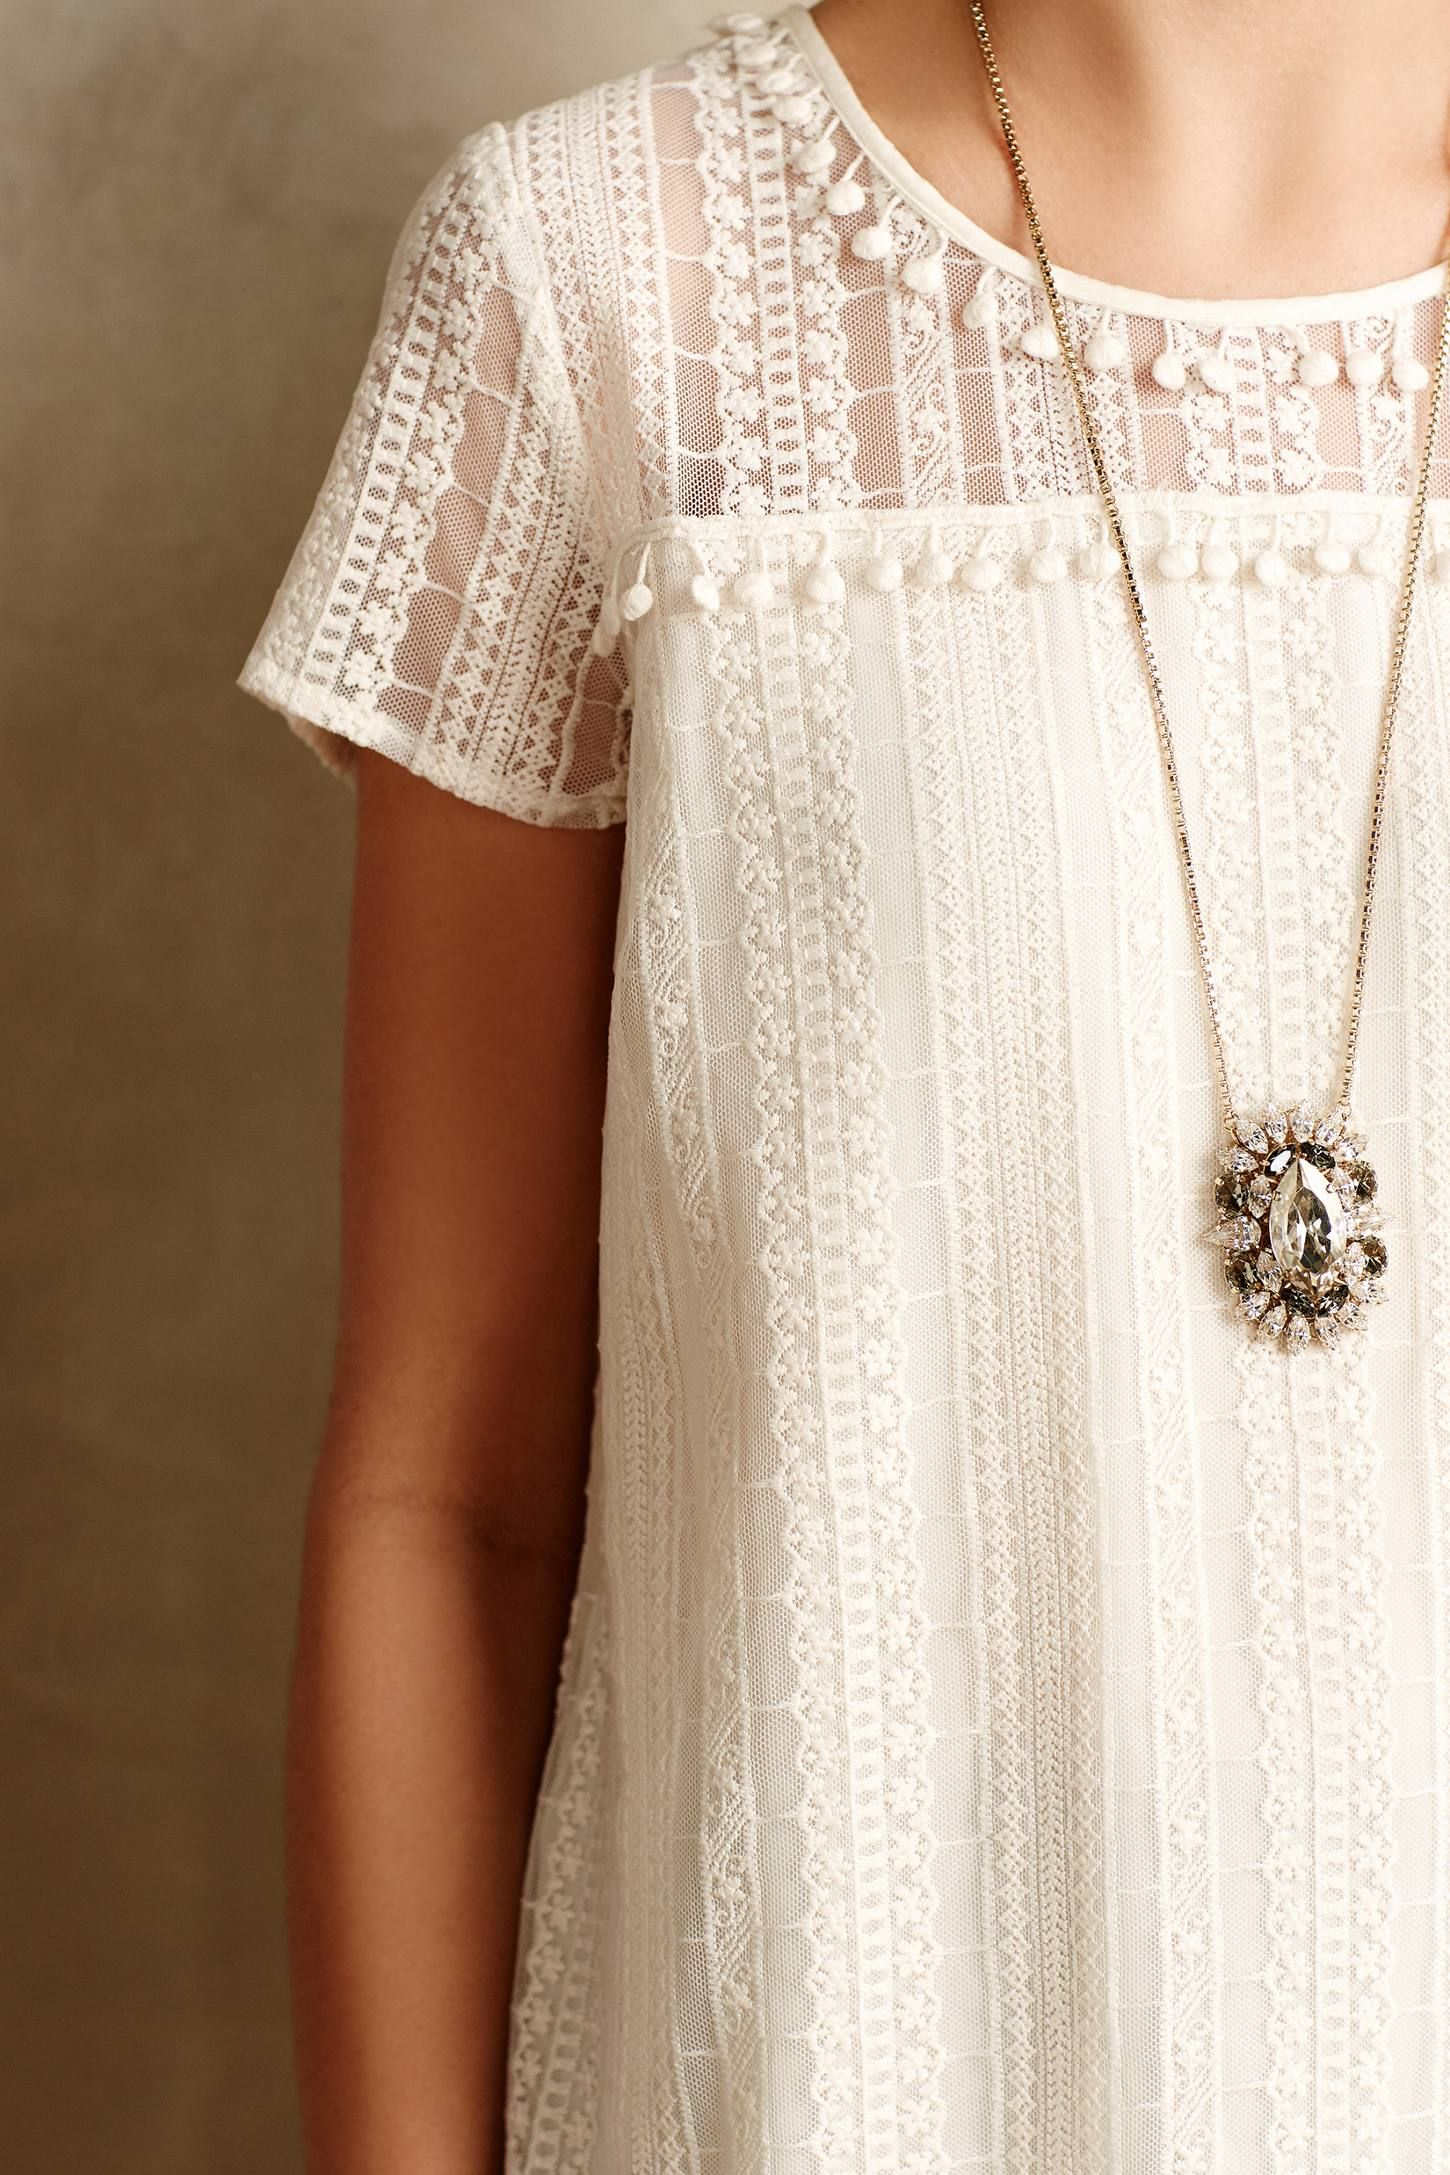 Pommed lace top anthropologie shop it up pinterest